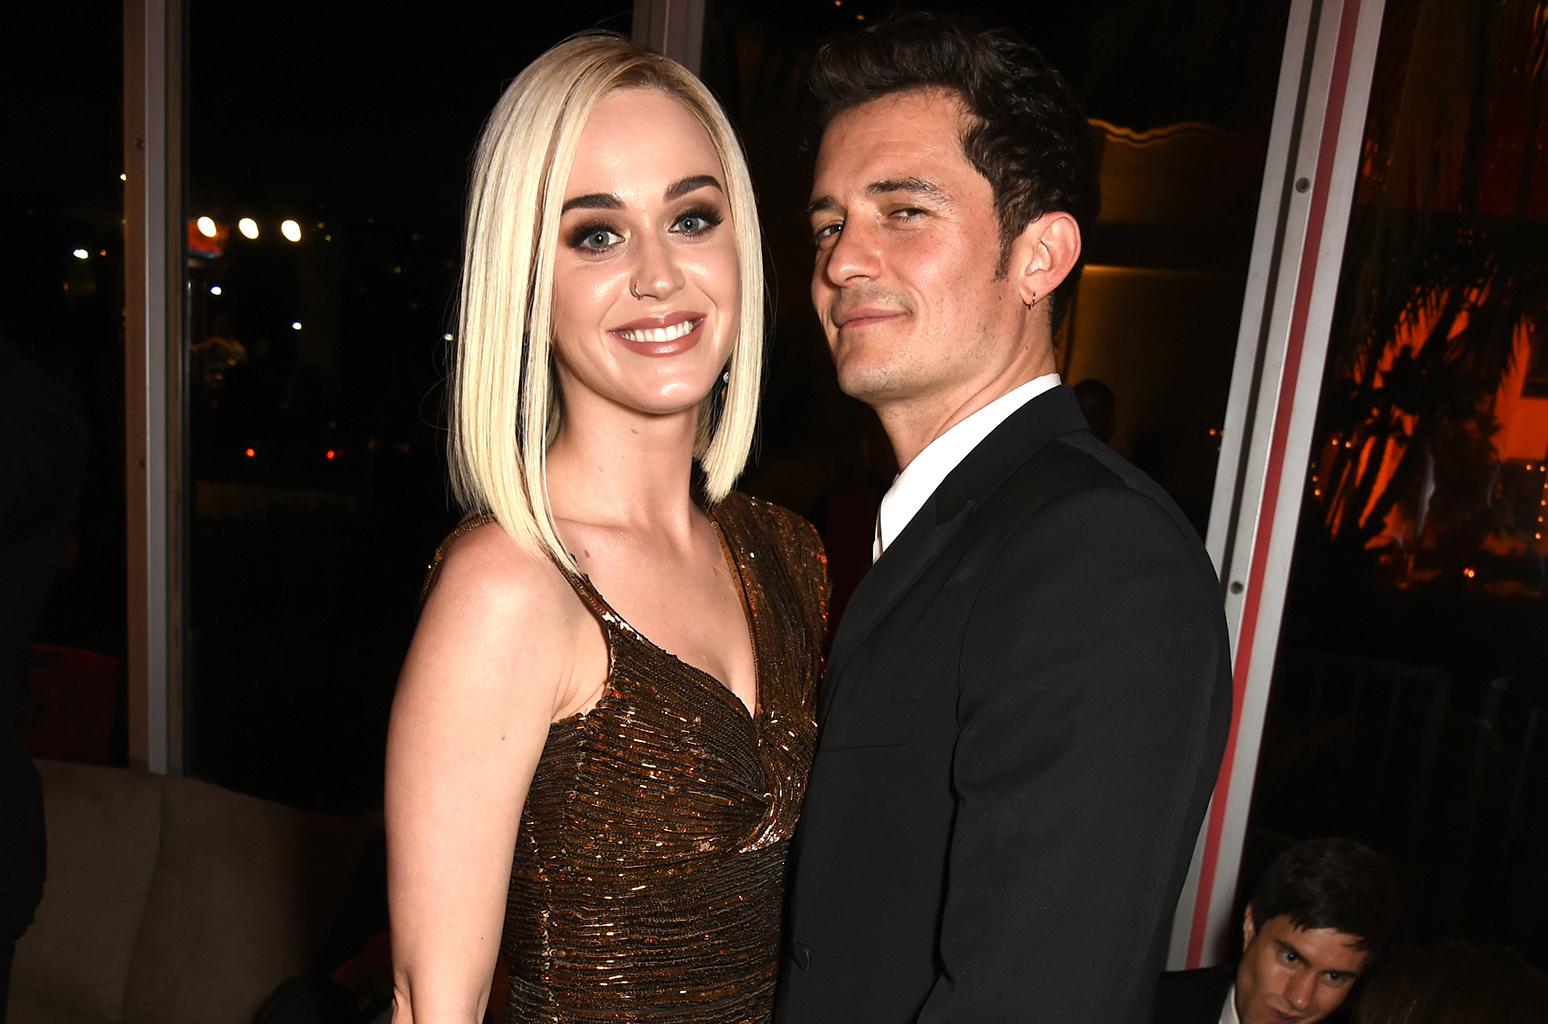 Katy Perry Sweetly Tells Orlando Bloom She 'Made The Right Choice'